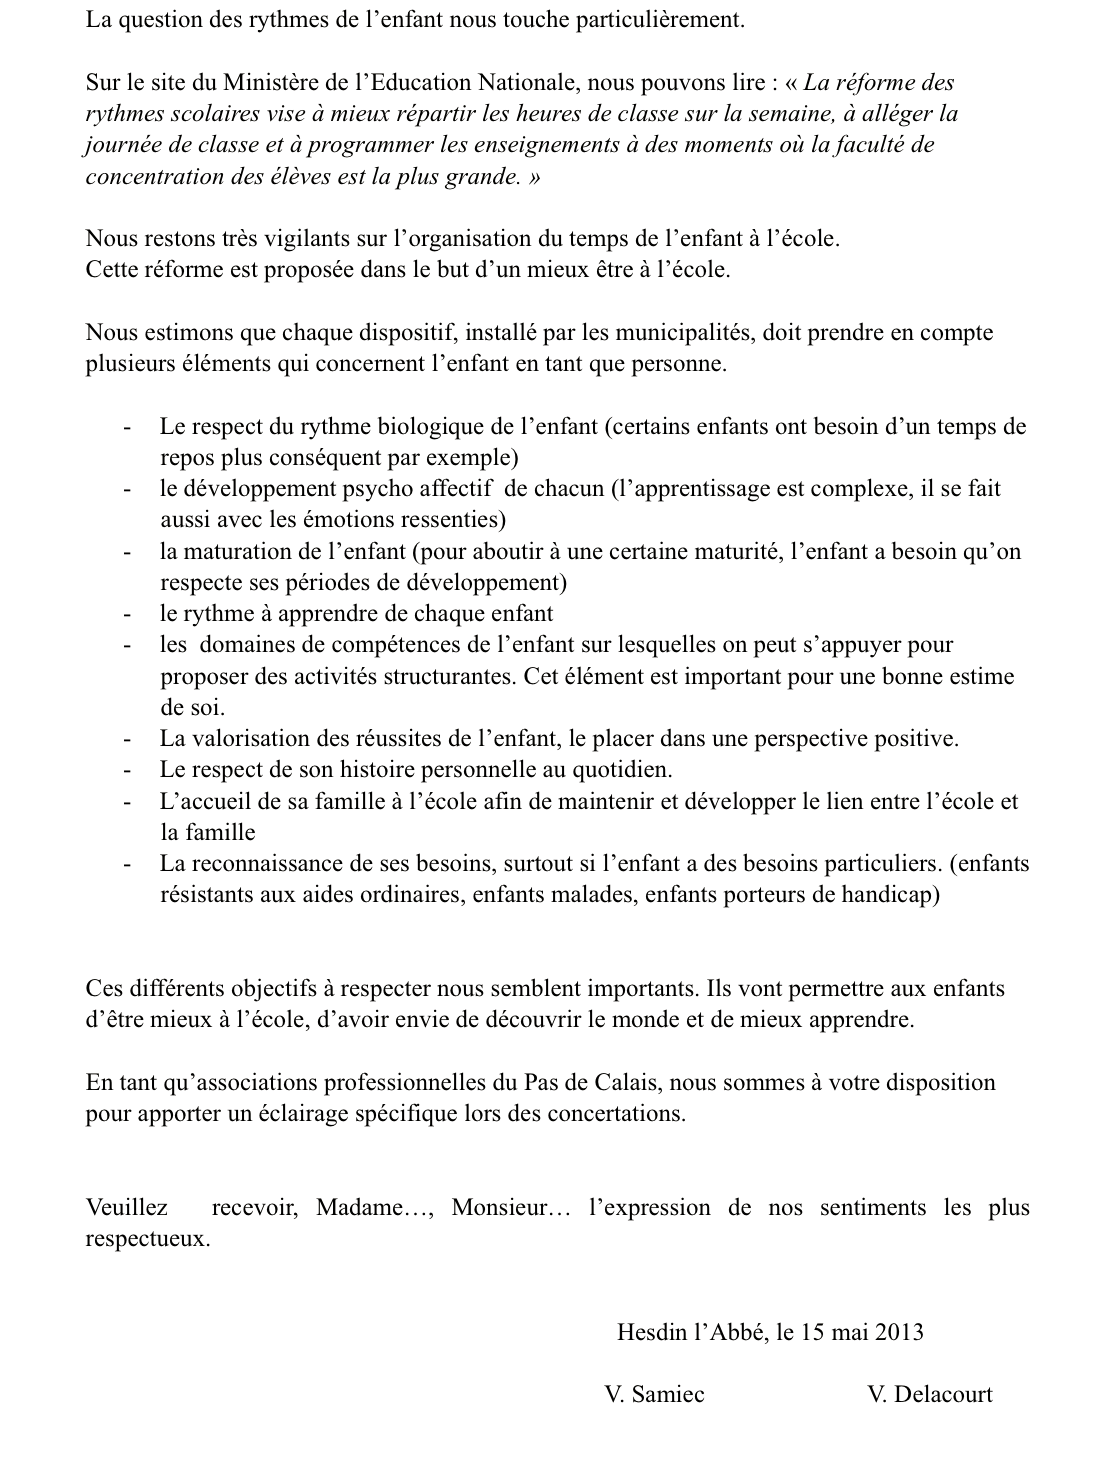 2 lettre commune rythmes scolaires AME_ ALRAL